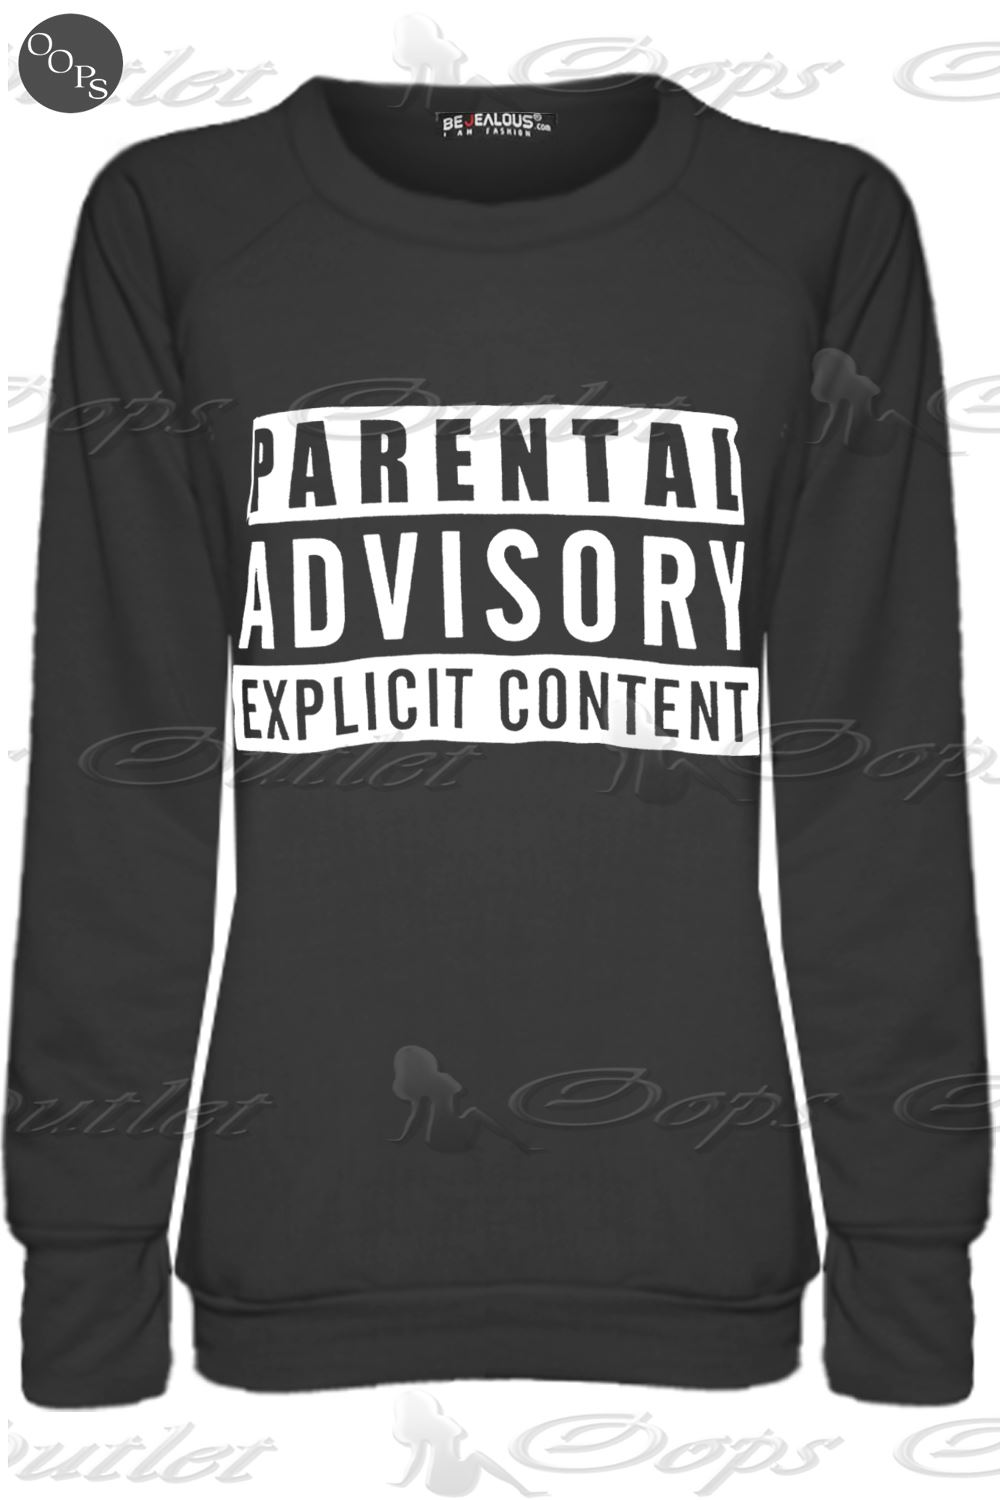 how to add parental advisory to a picture on iphone